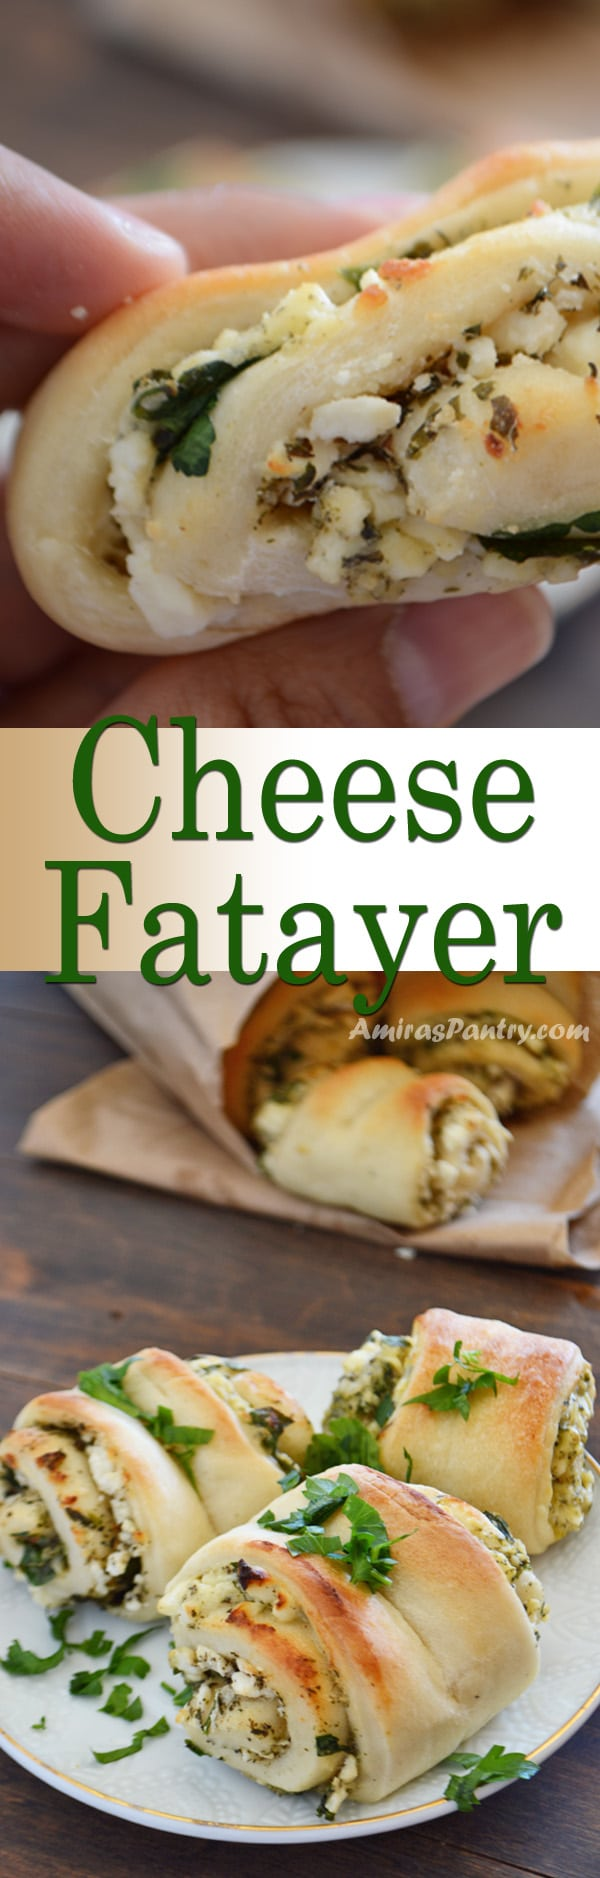 Cheese fatayer amiras pantry sign up for the free amiras pantry newsletter delivered to your inbox with lots of tips and surprises and stay in touch with me on facebook twitter forumfinder Images